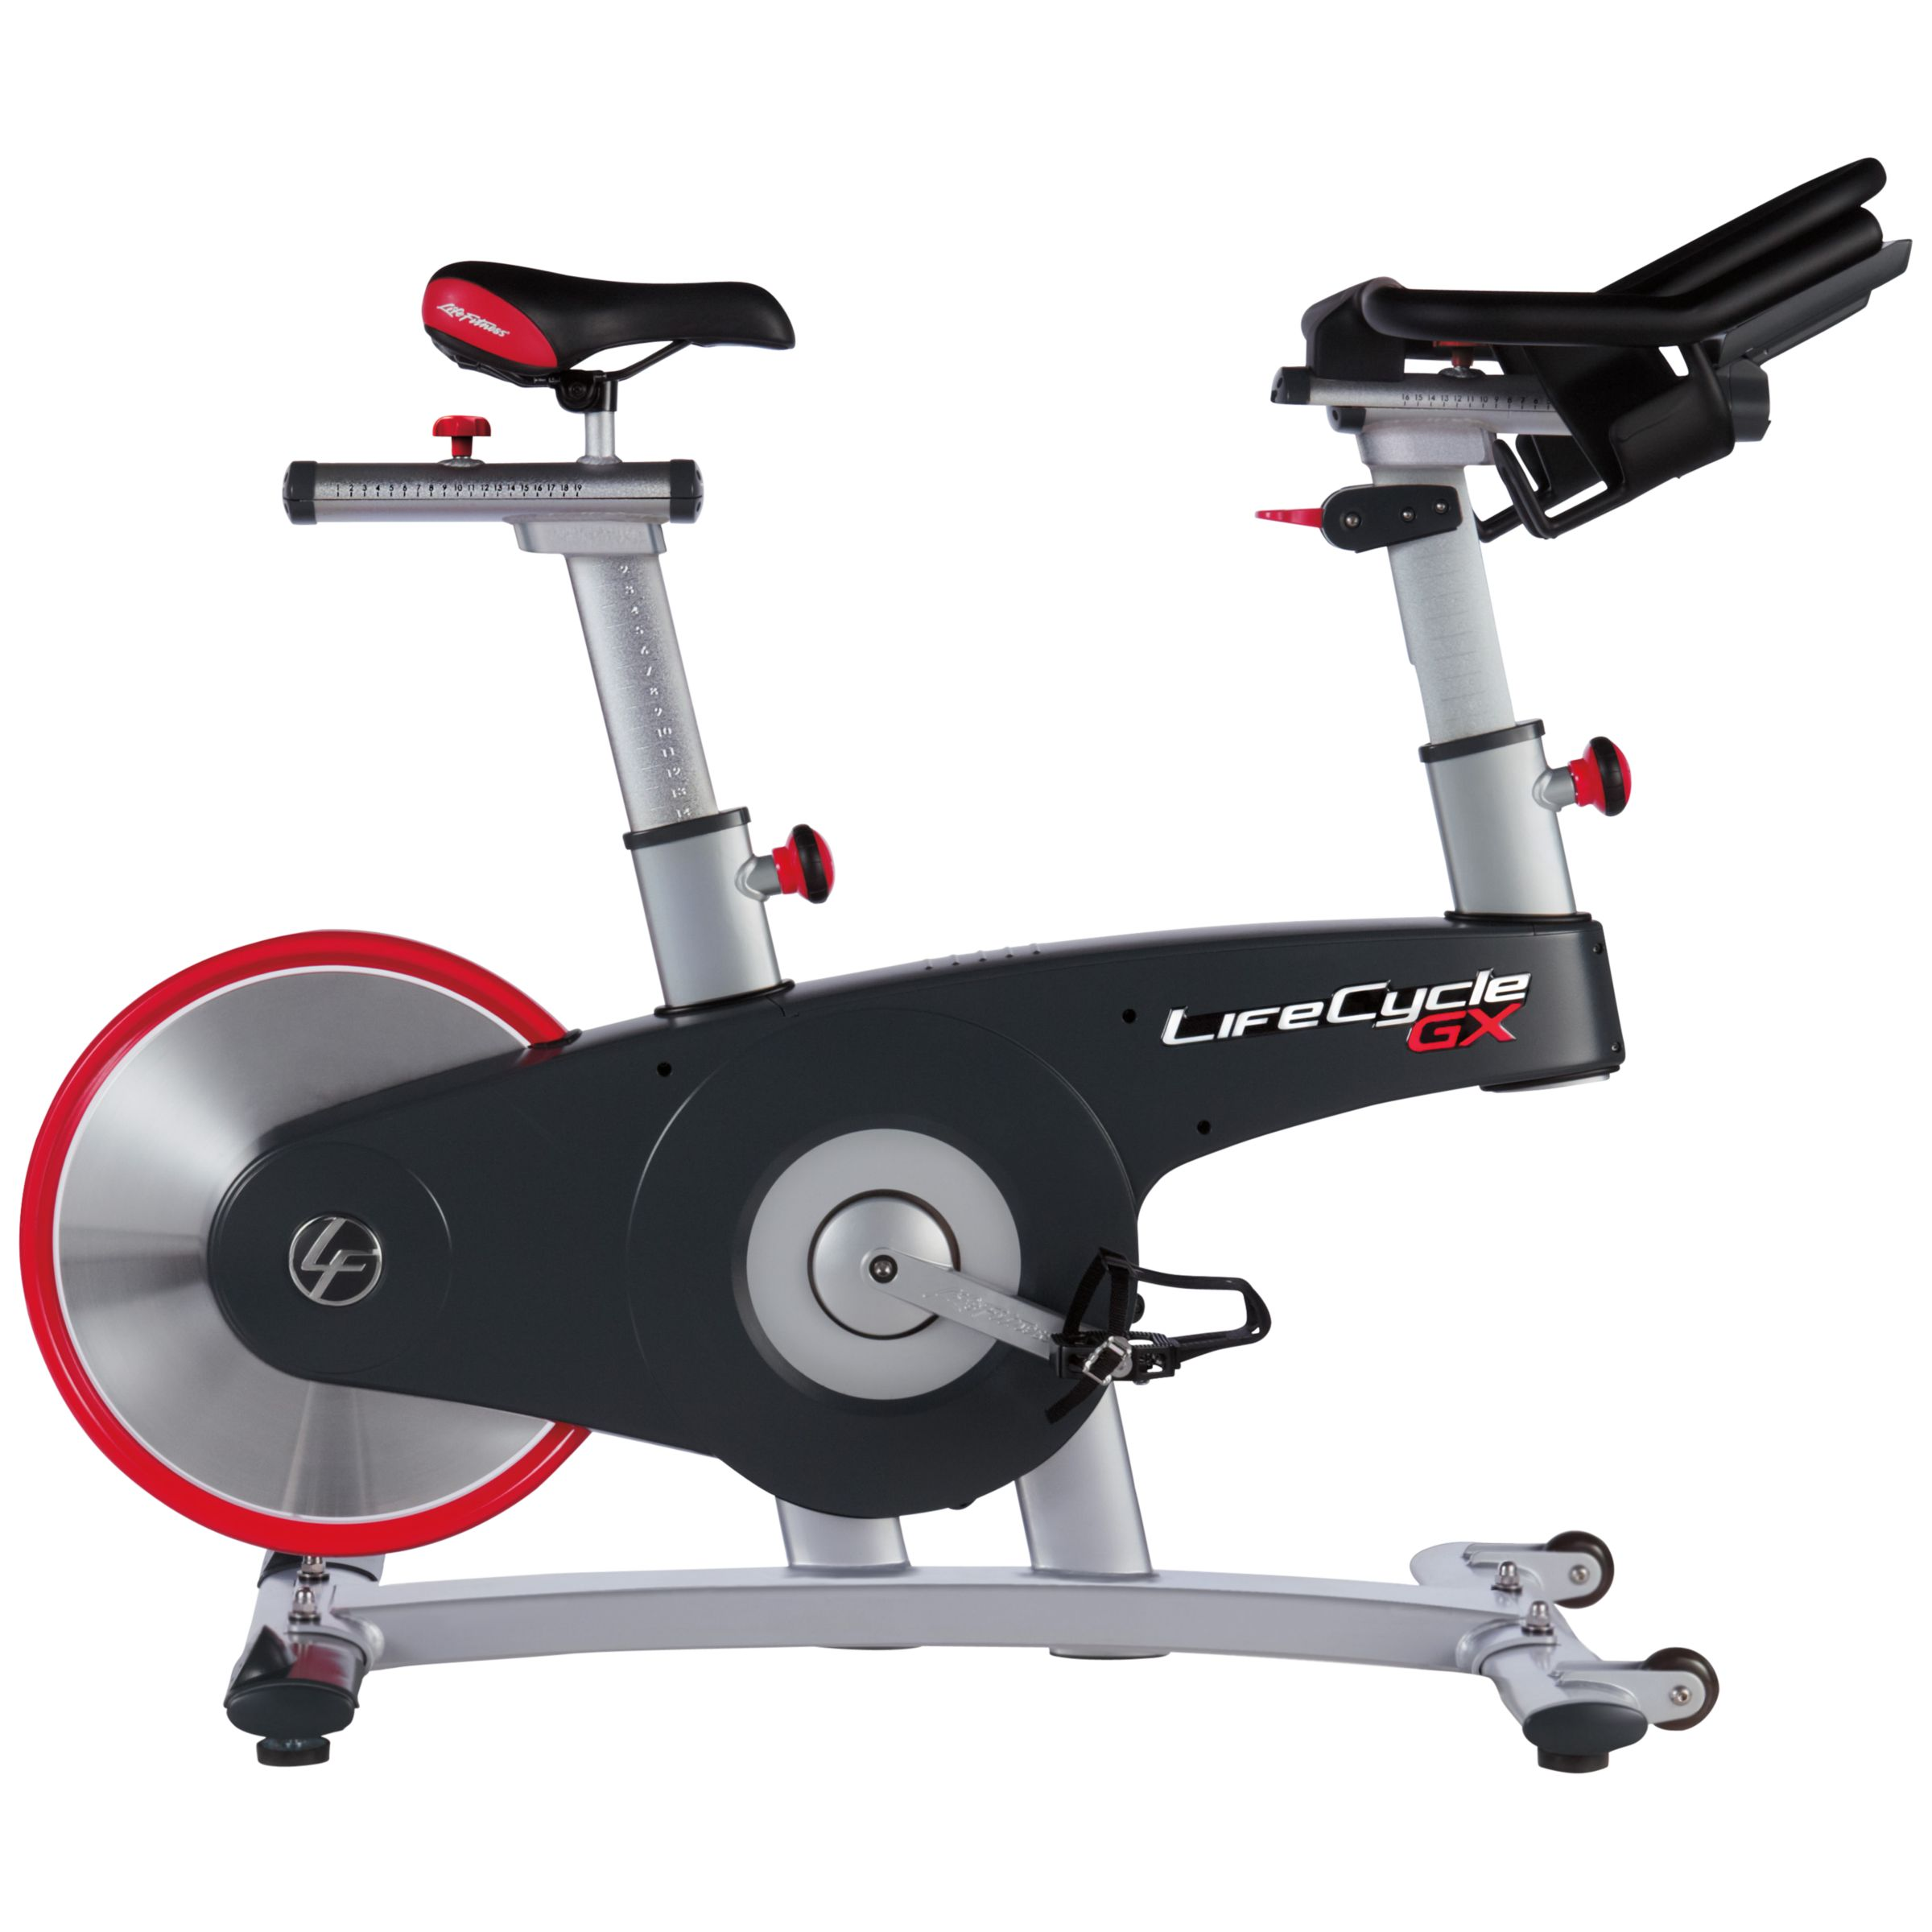 Life Fitness Life Fitness Life Cycle GX Exercise Bike, Silver/Grey/Red